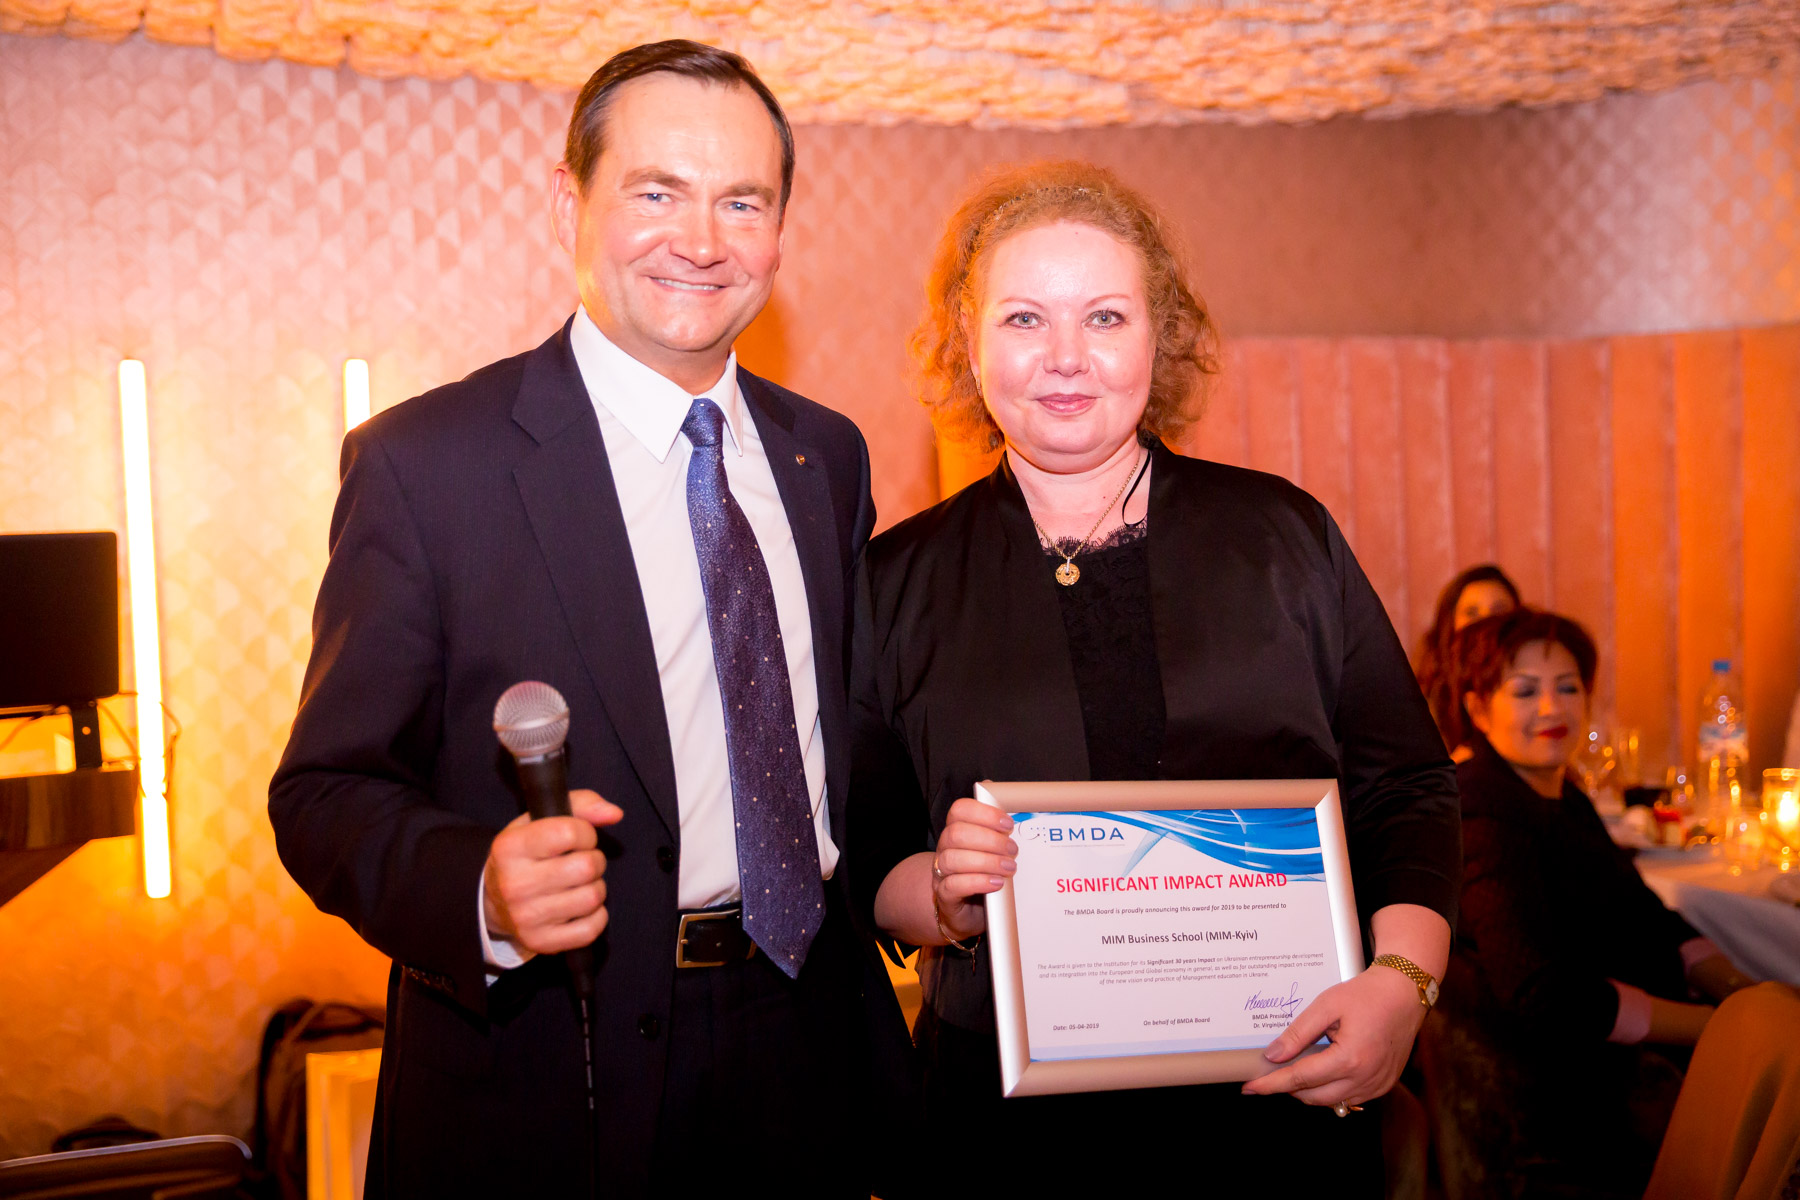 MIM receives BMDA award for Significant impact